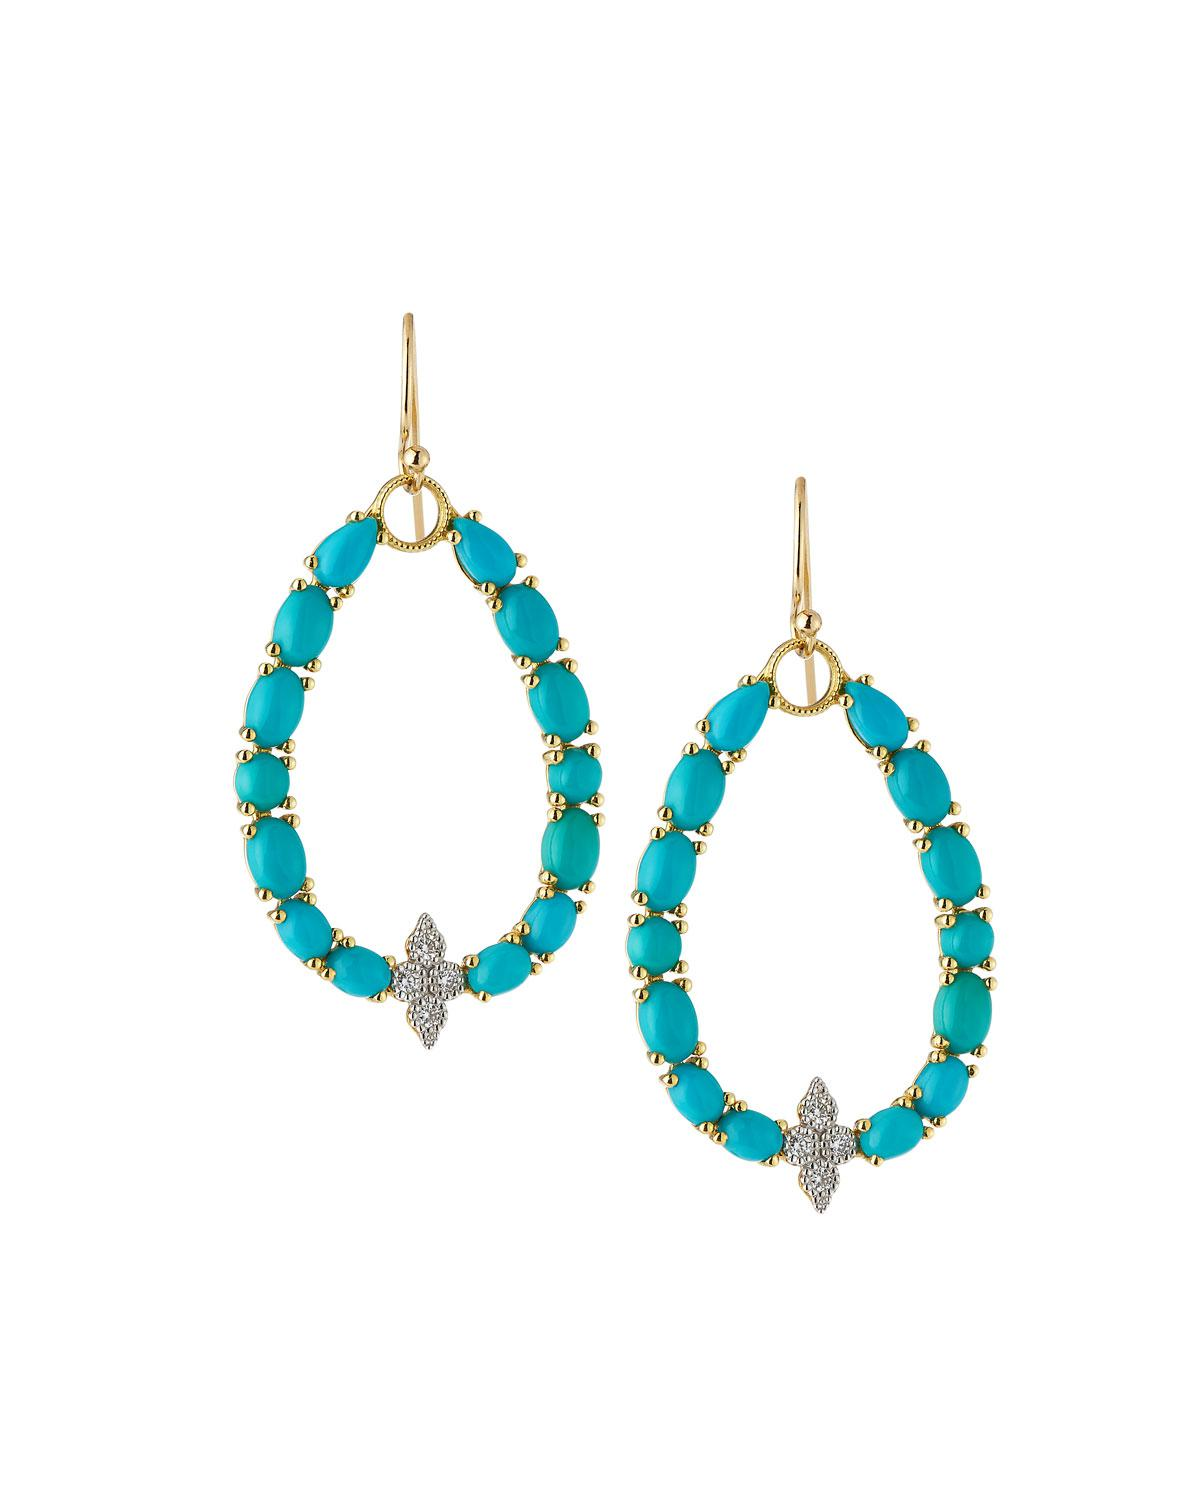 Jude Frances Moroccan 18k Yellow Gold Turquoise/Diamond Drop Earrings rRFWLdml8